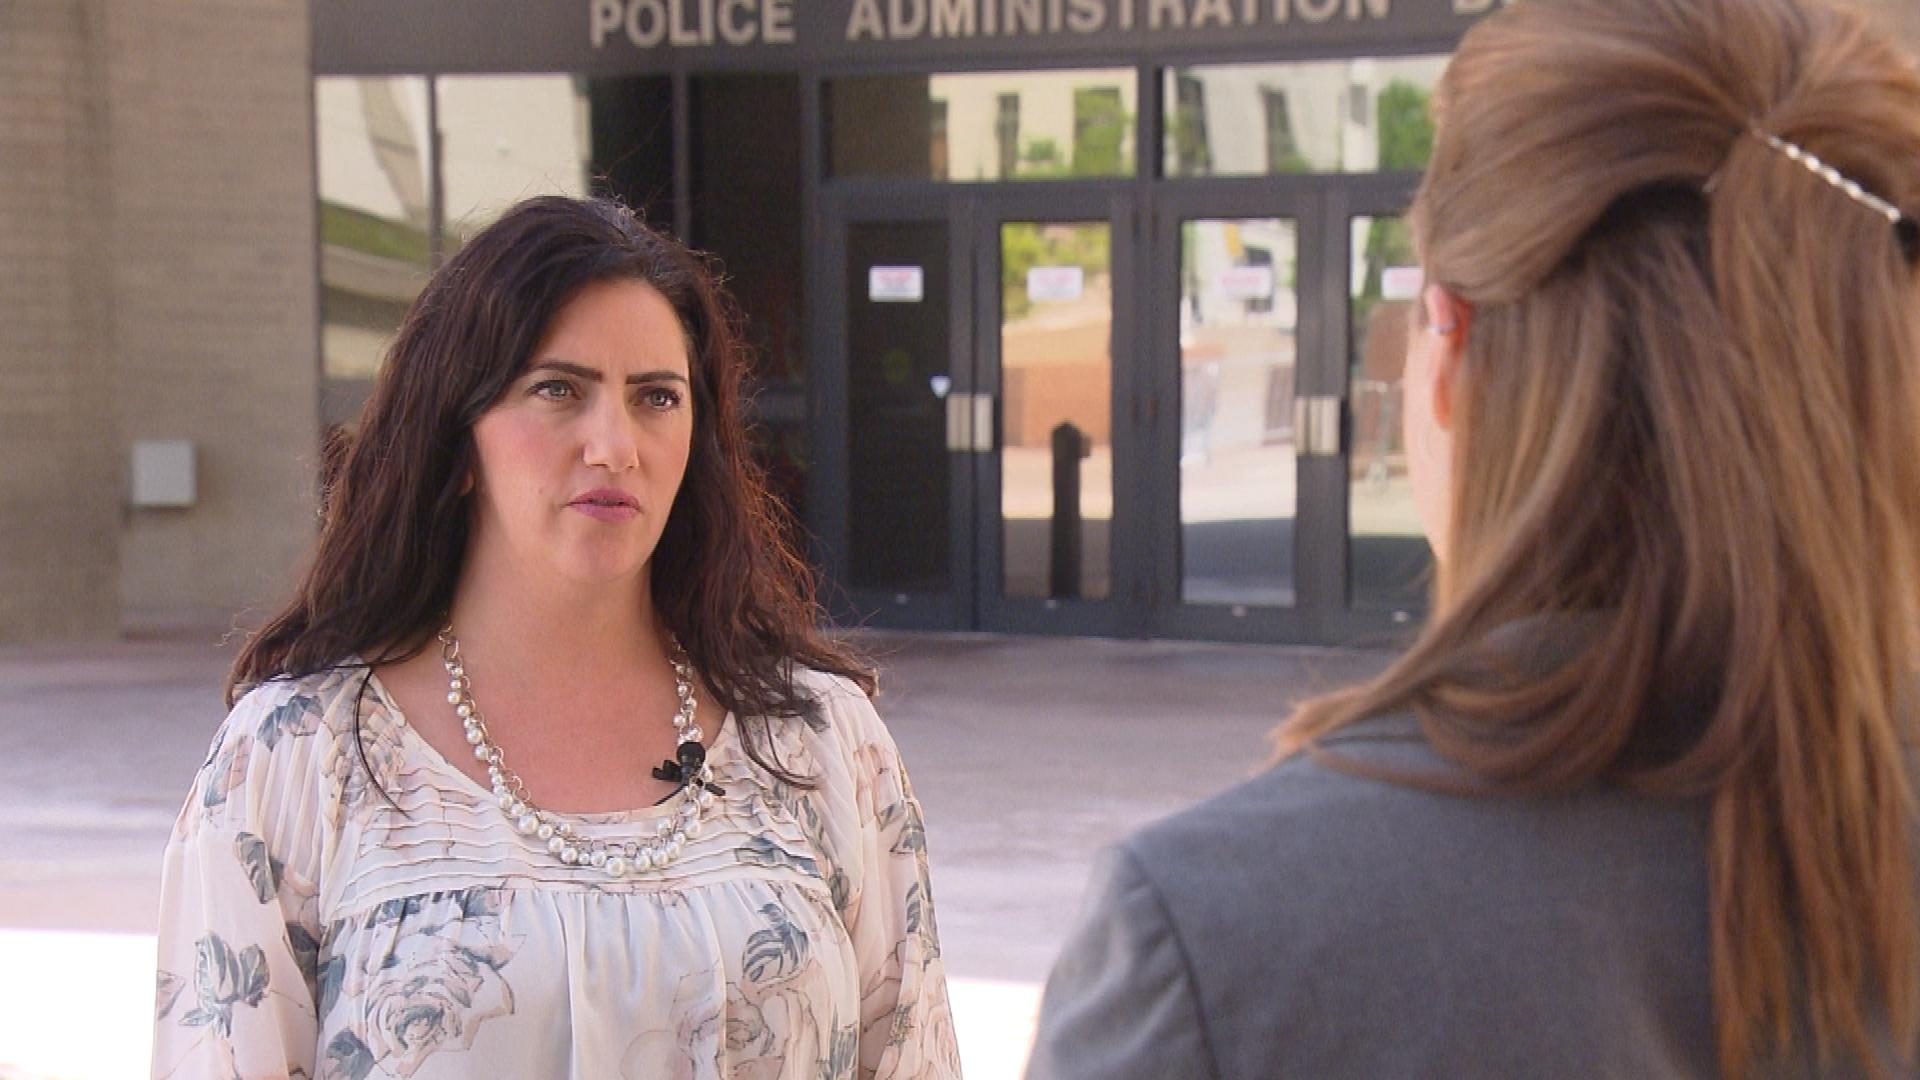 Christine Downs with the Denver Police Department is interviewed by CBS4's Melissa Garcia (credit; CBS)